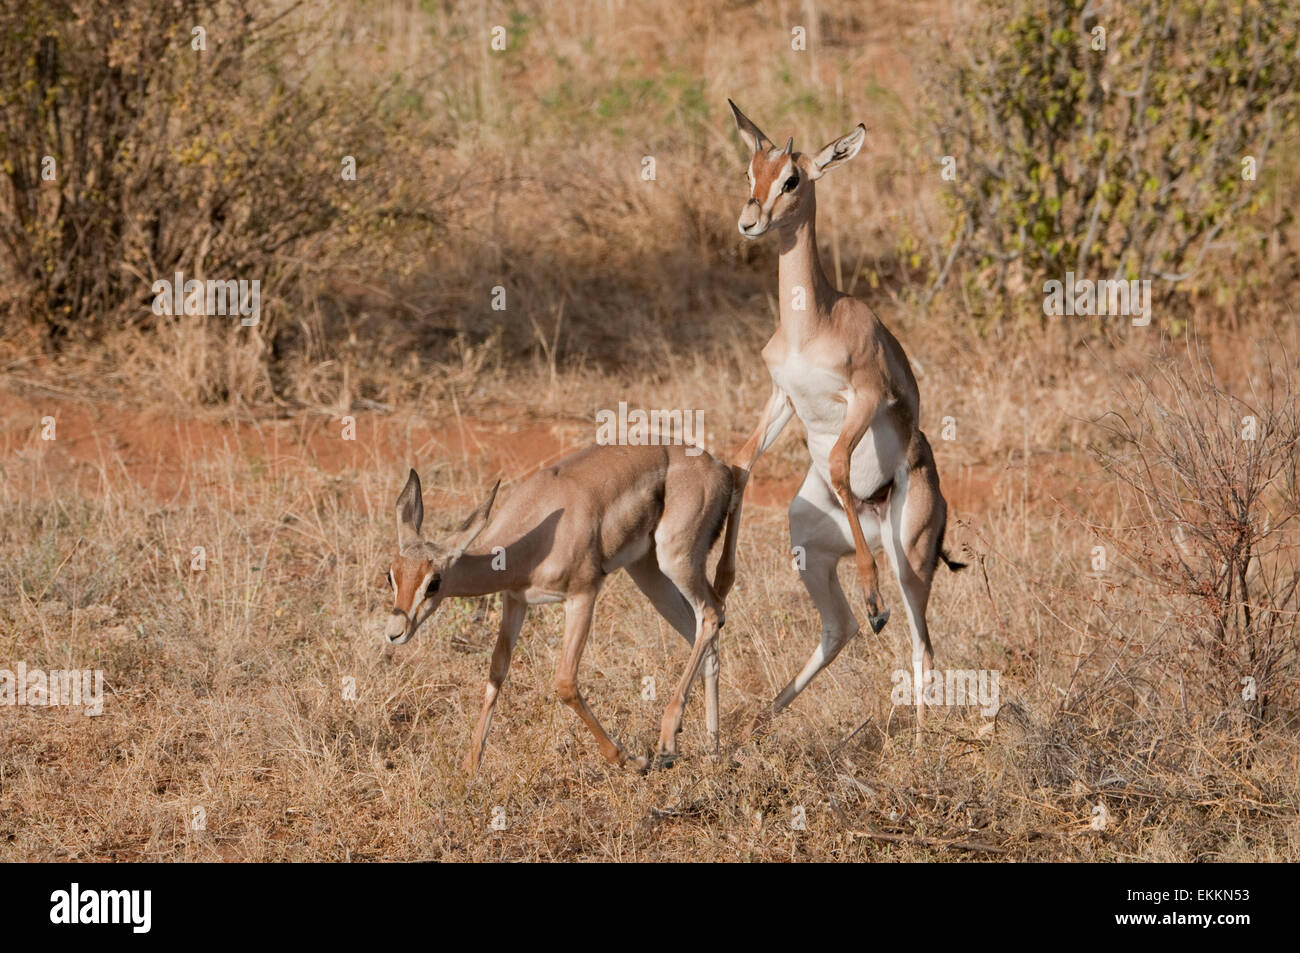 Two young Grant's Gazelles, one trying to mount other - Stock Image